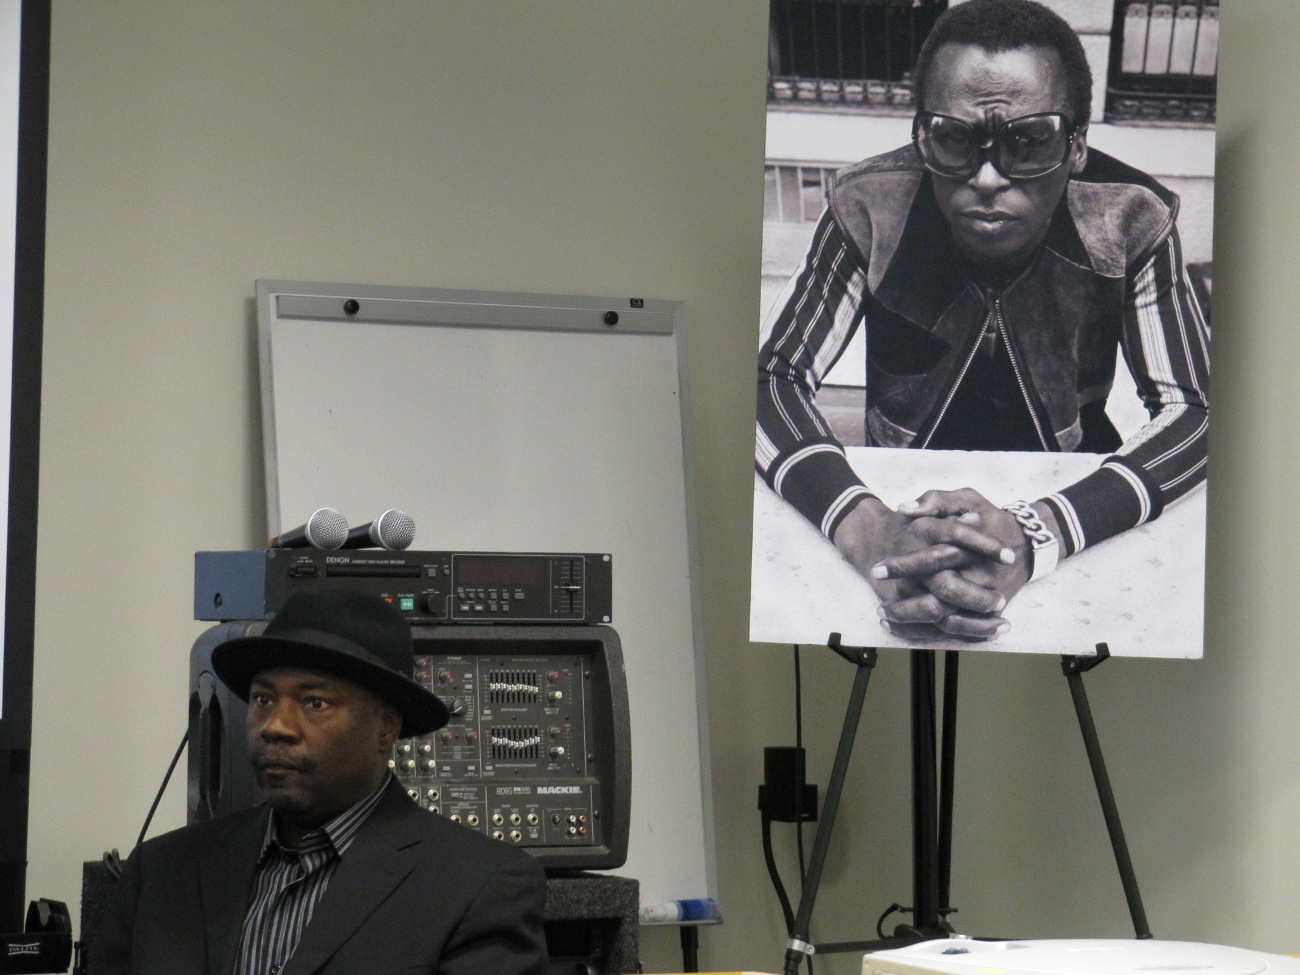 Lenny White with Miles Davis photo in the background